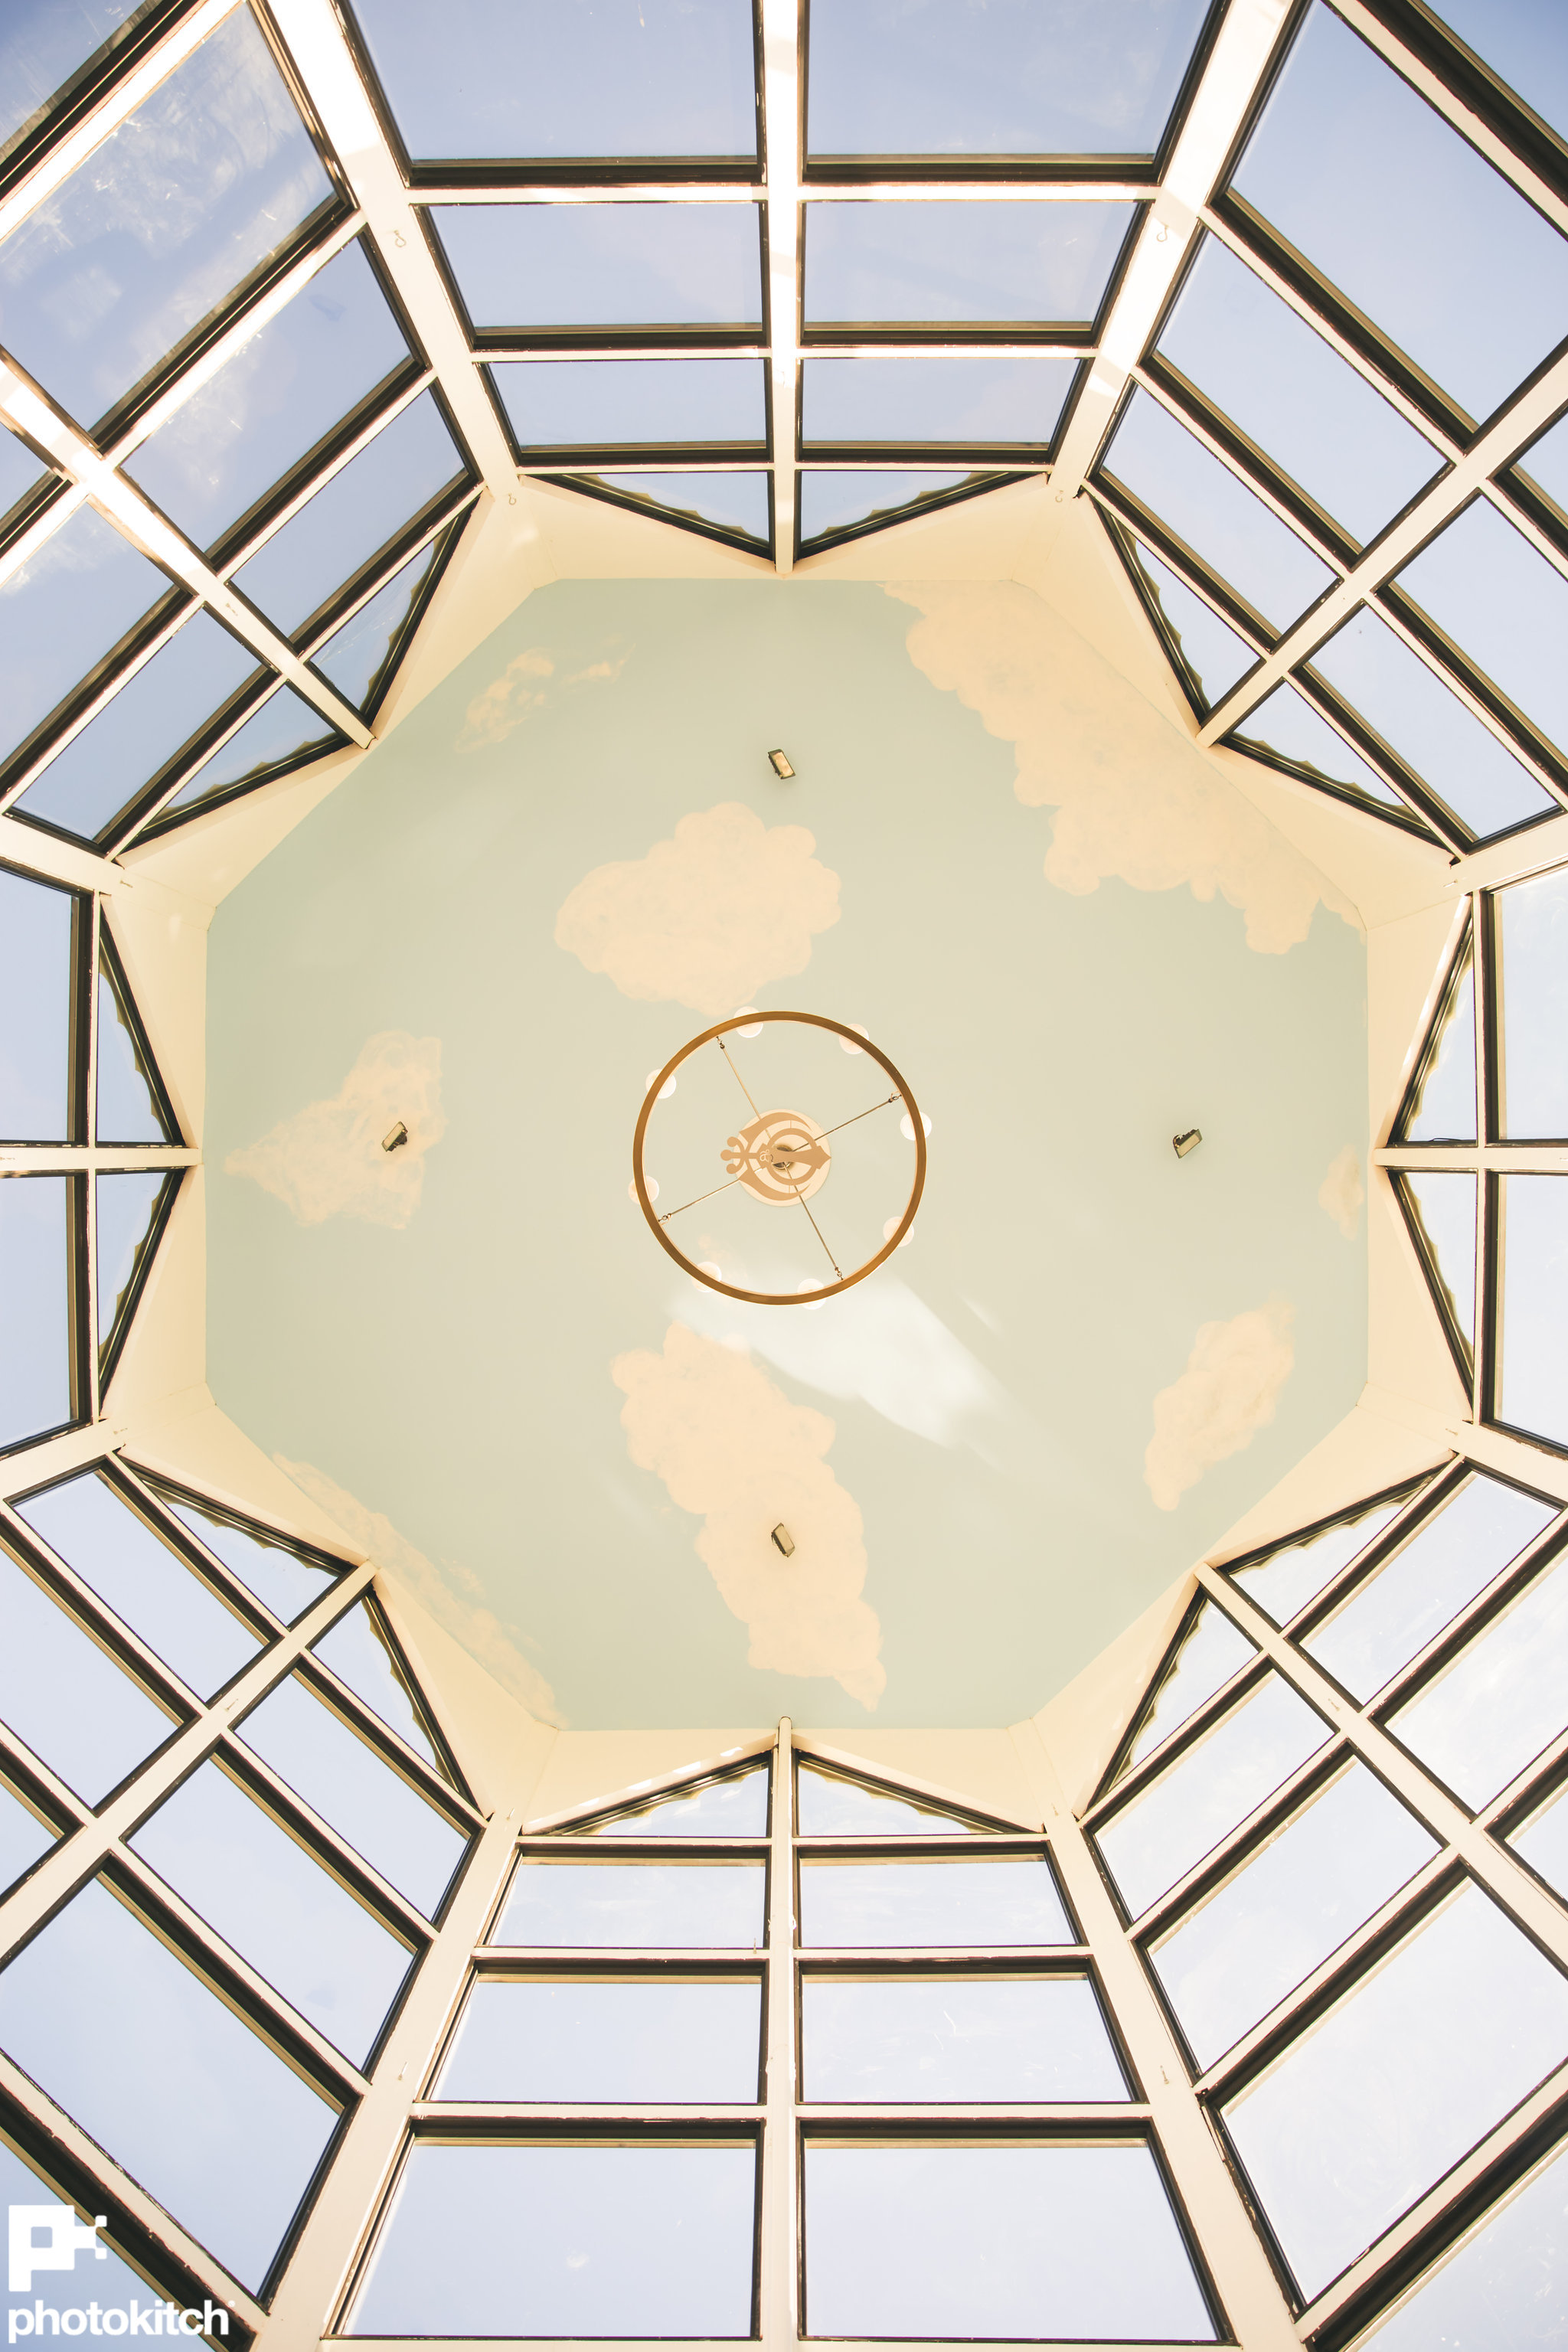 Inside view of Dome